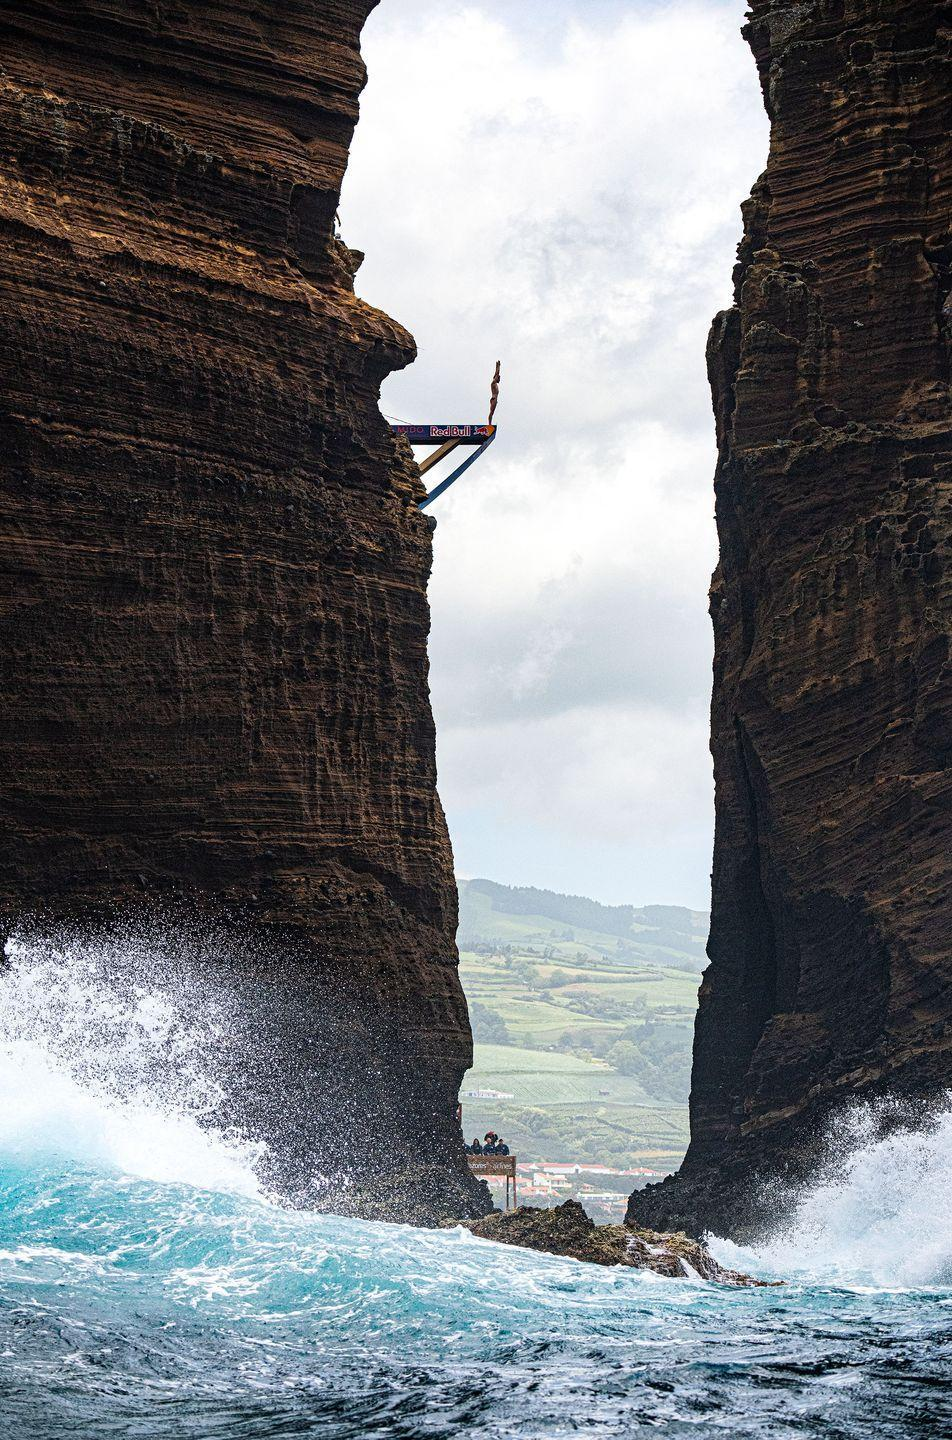 """<p>Nine islands are what the mid-Atlantic <a href=""""https://azores.com/"""" rel=""""nofollow noopener"""" target=""""_blank"""" data-ylk=""""slk:Azores"""" class=""""link rapid-noclick-resp"""">Azores</a> consist of and it was gearing up to be the next """"it"""" place pre-coronavirus. Each island has a different attraction and tradition making it an adaptable destination for every type of vacationer. From great hiking to walking inside of a volcano, <a href=""""https://www.visitportugal.com/en/destinos/acores"""" rel=""""nofollow noopener"""" target=""""_blank"""" data-ylk=""""slk:the Azores"""" class=""""link rapid-noclick-resp"""">the Azores</a> became the perfect place to get thrills at an affordable rate. </p>"""